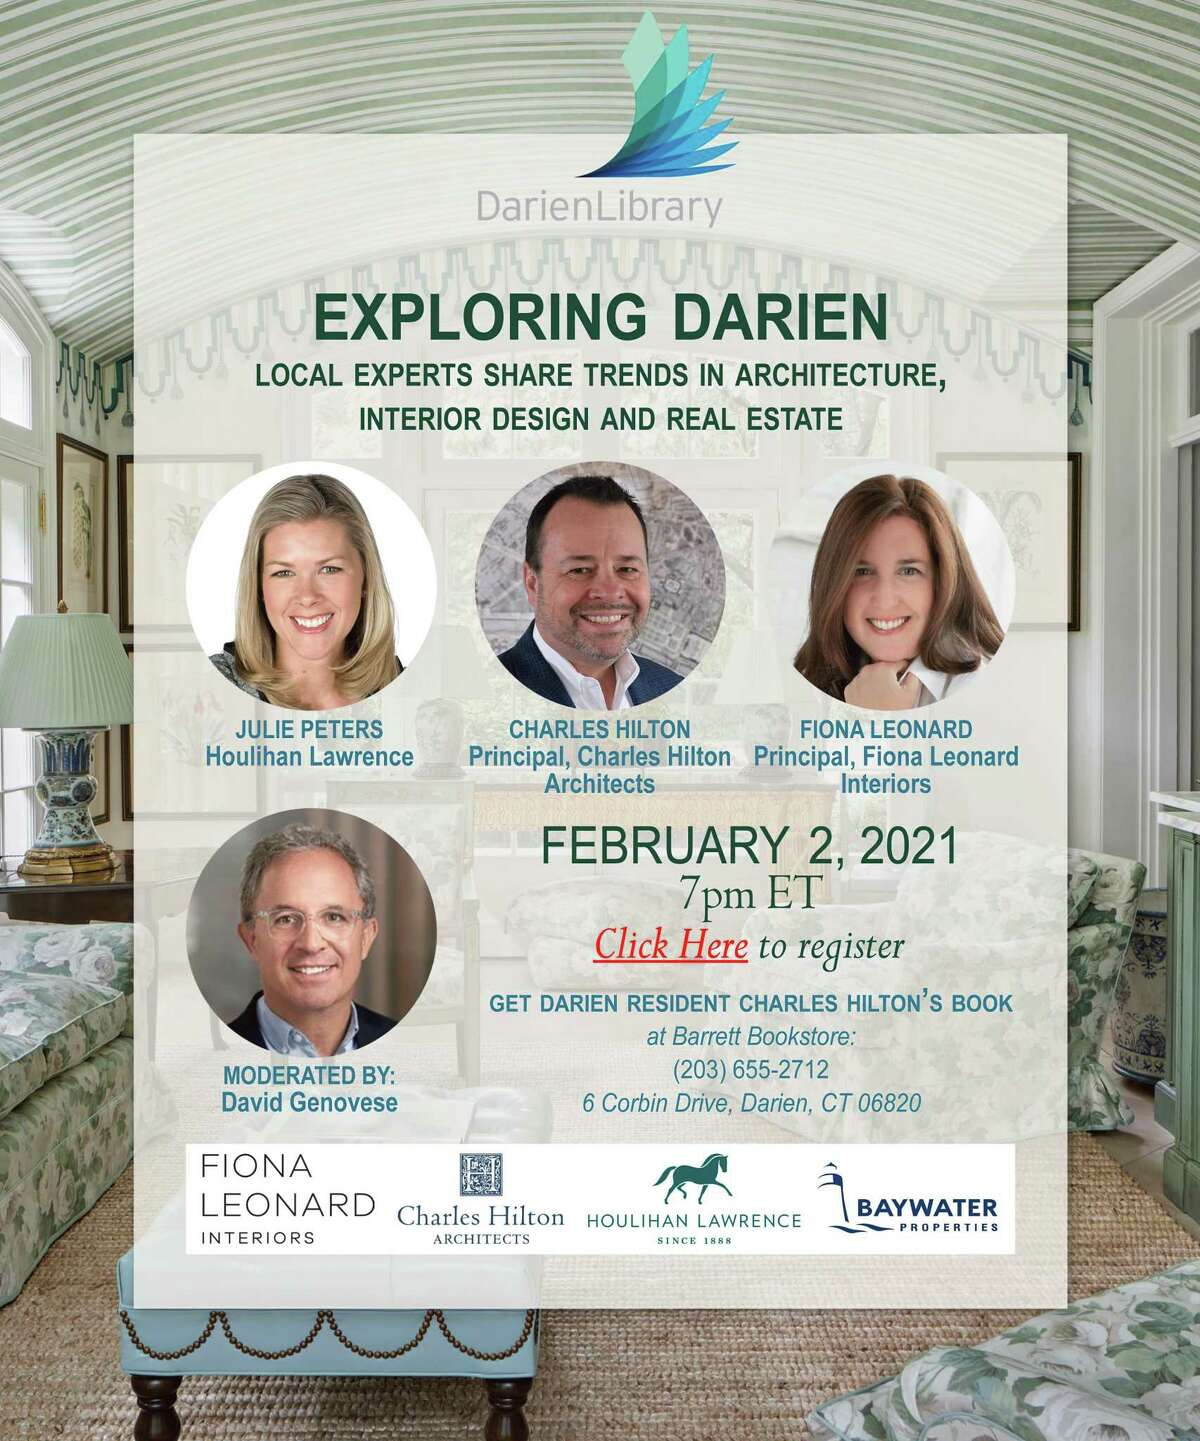 Local experts are going to share trends in architecture, interior design, and real estate during a virtual